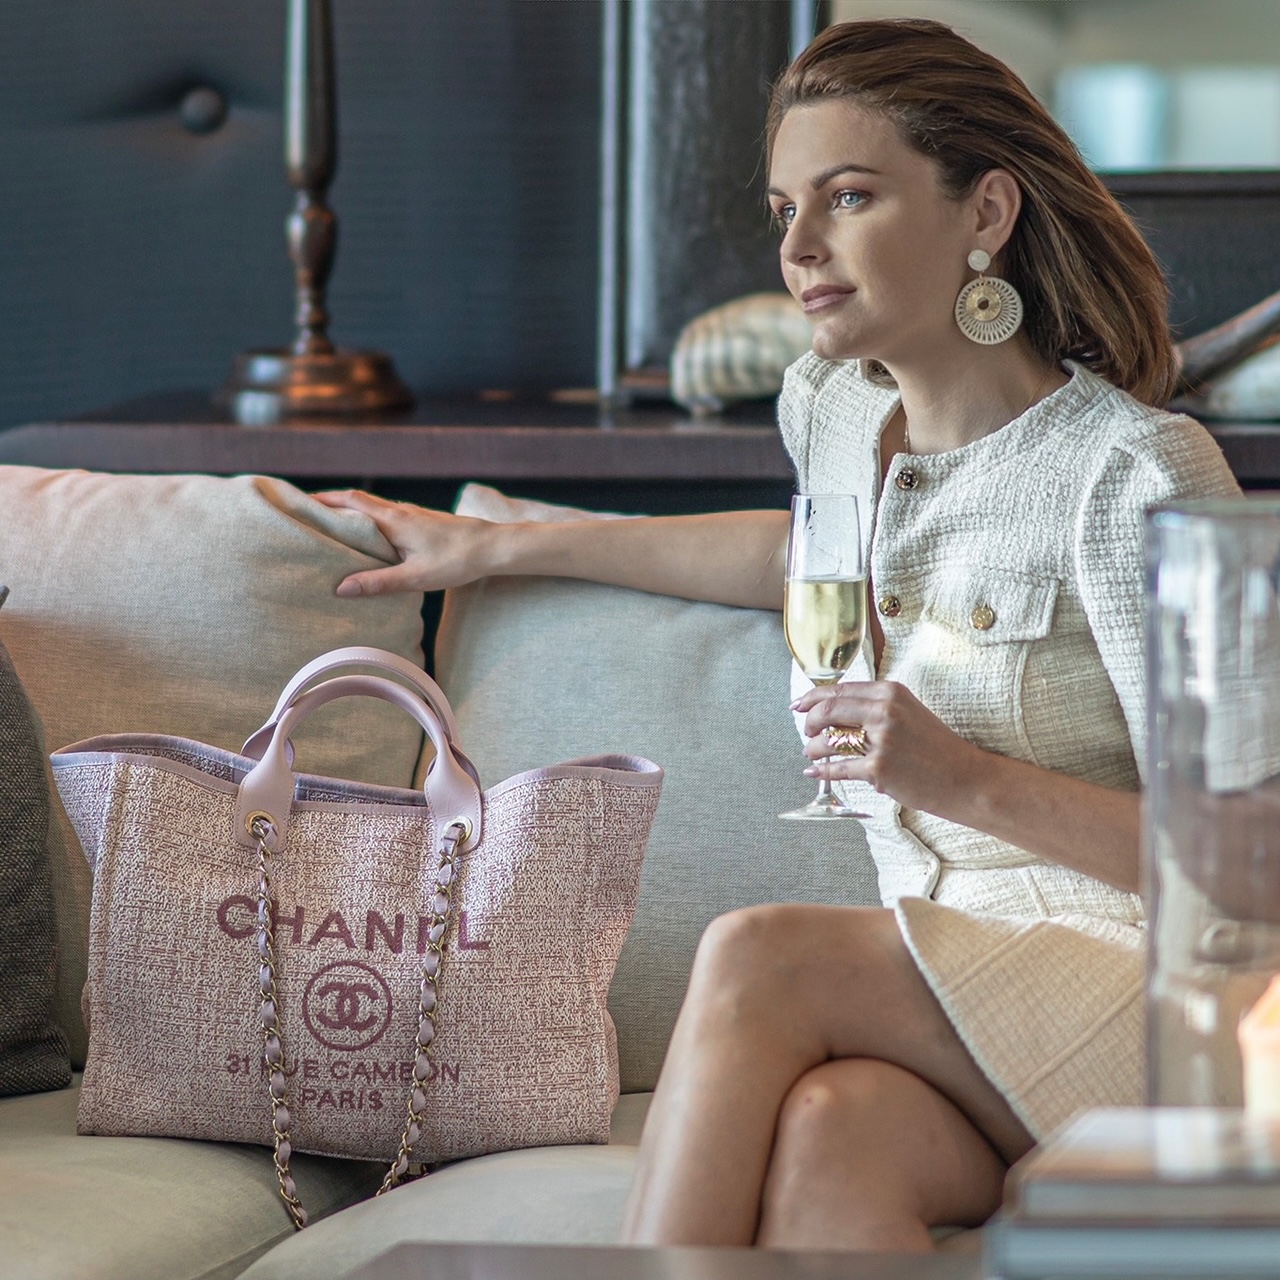 Girl drinking champagne with Chanel bag